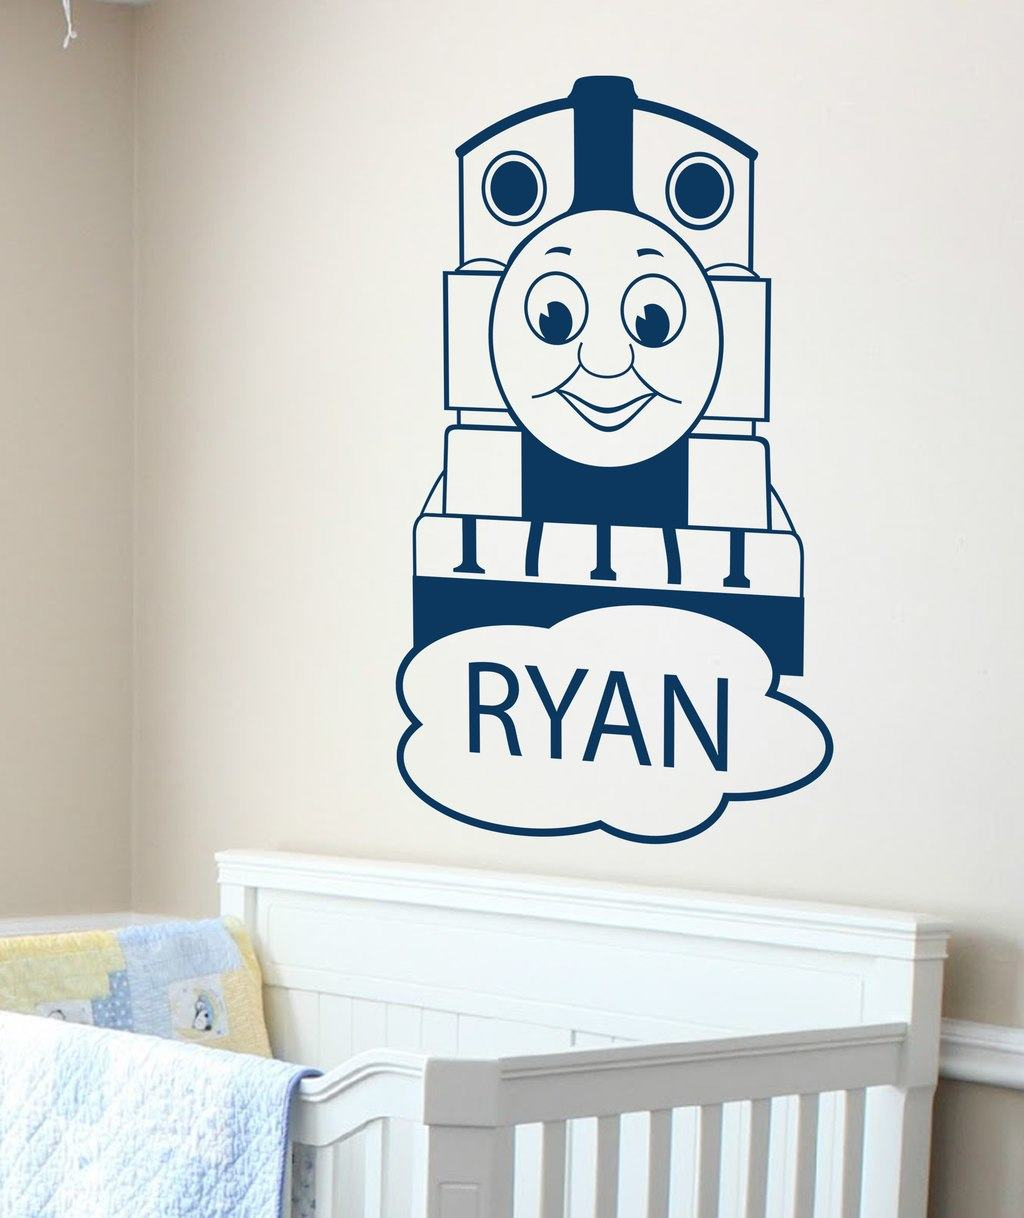 personalized tank featuring wall stickers from ey thomas amp friends wall stikarounds 32 stickers new tank